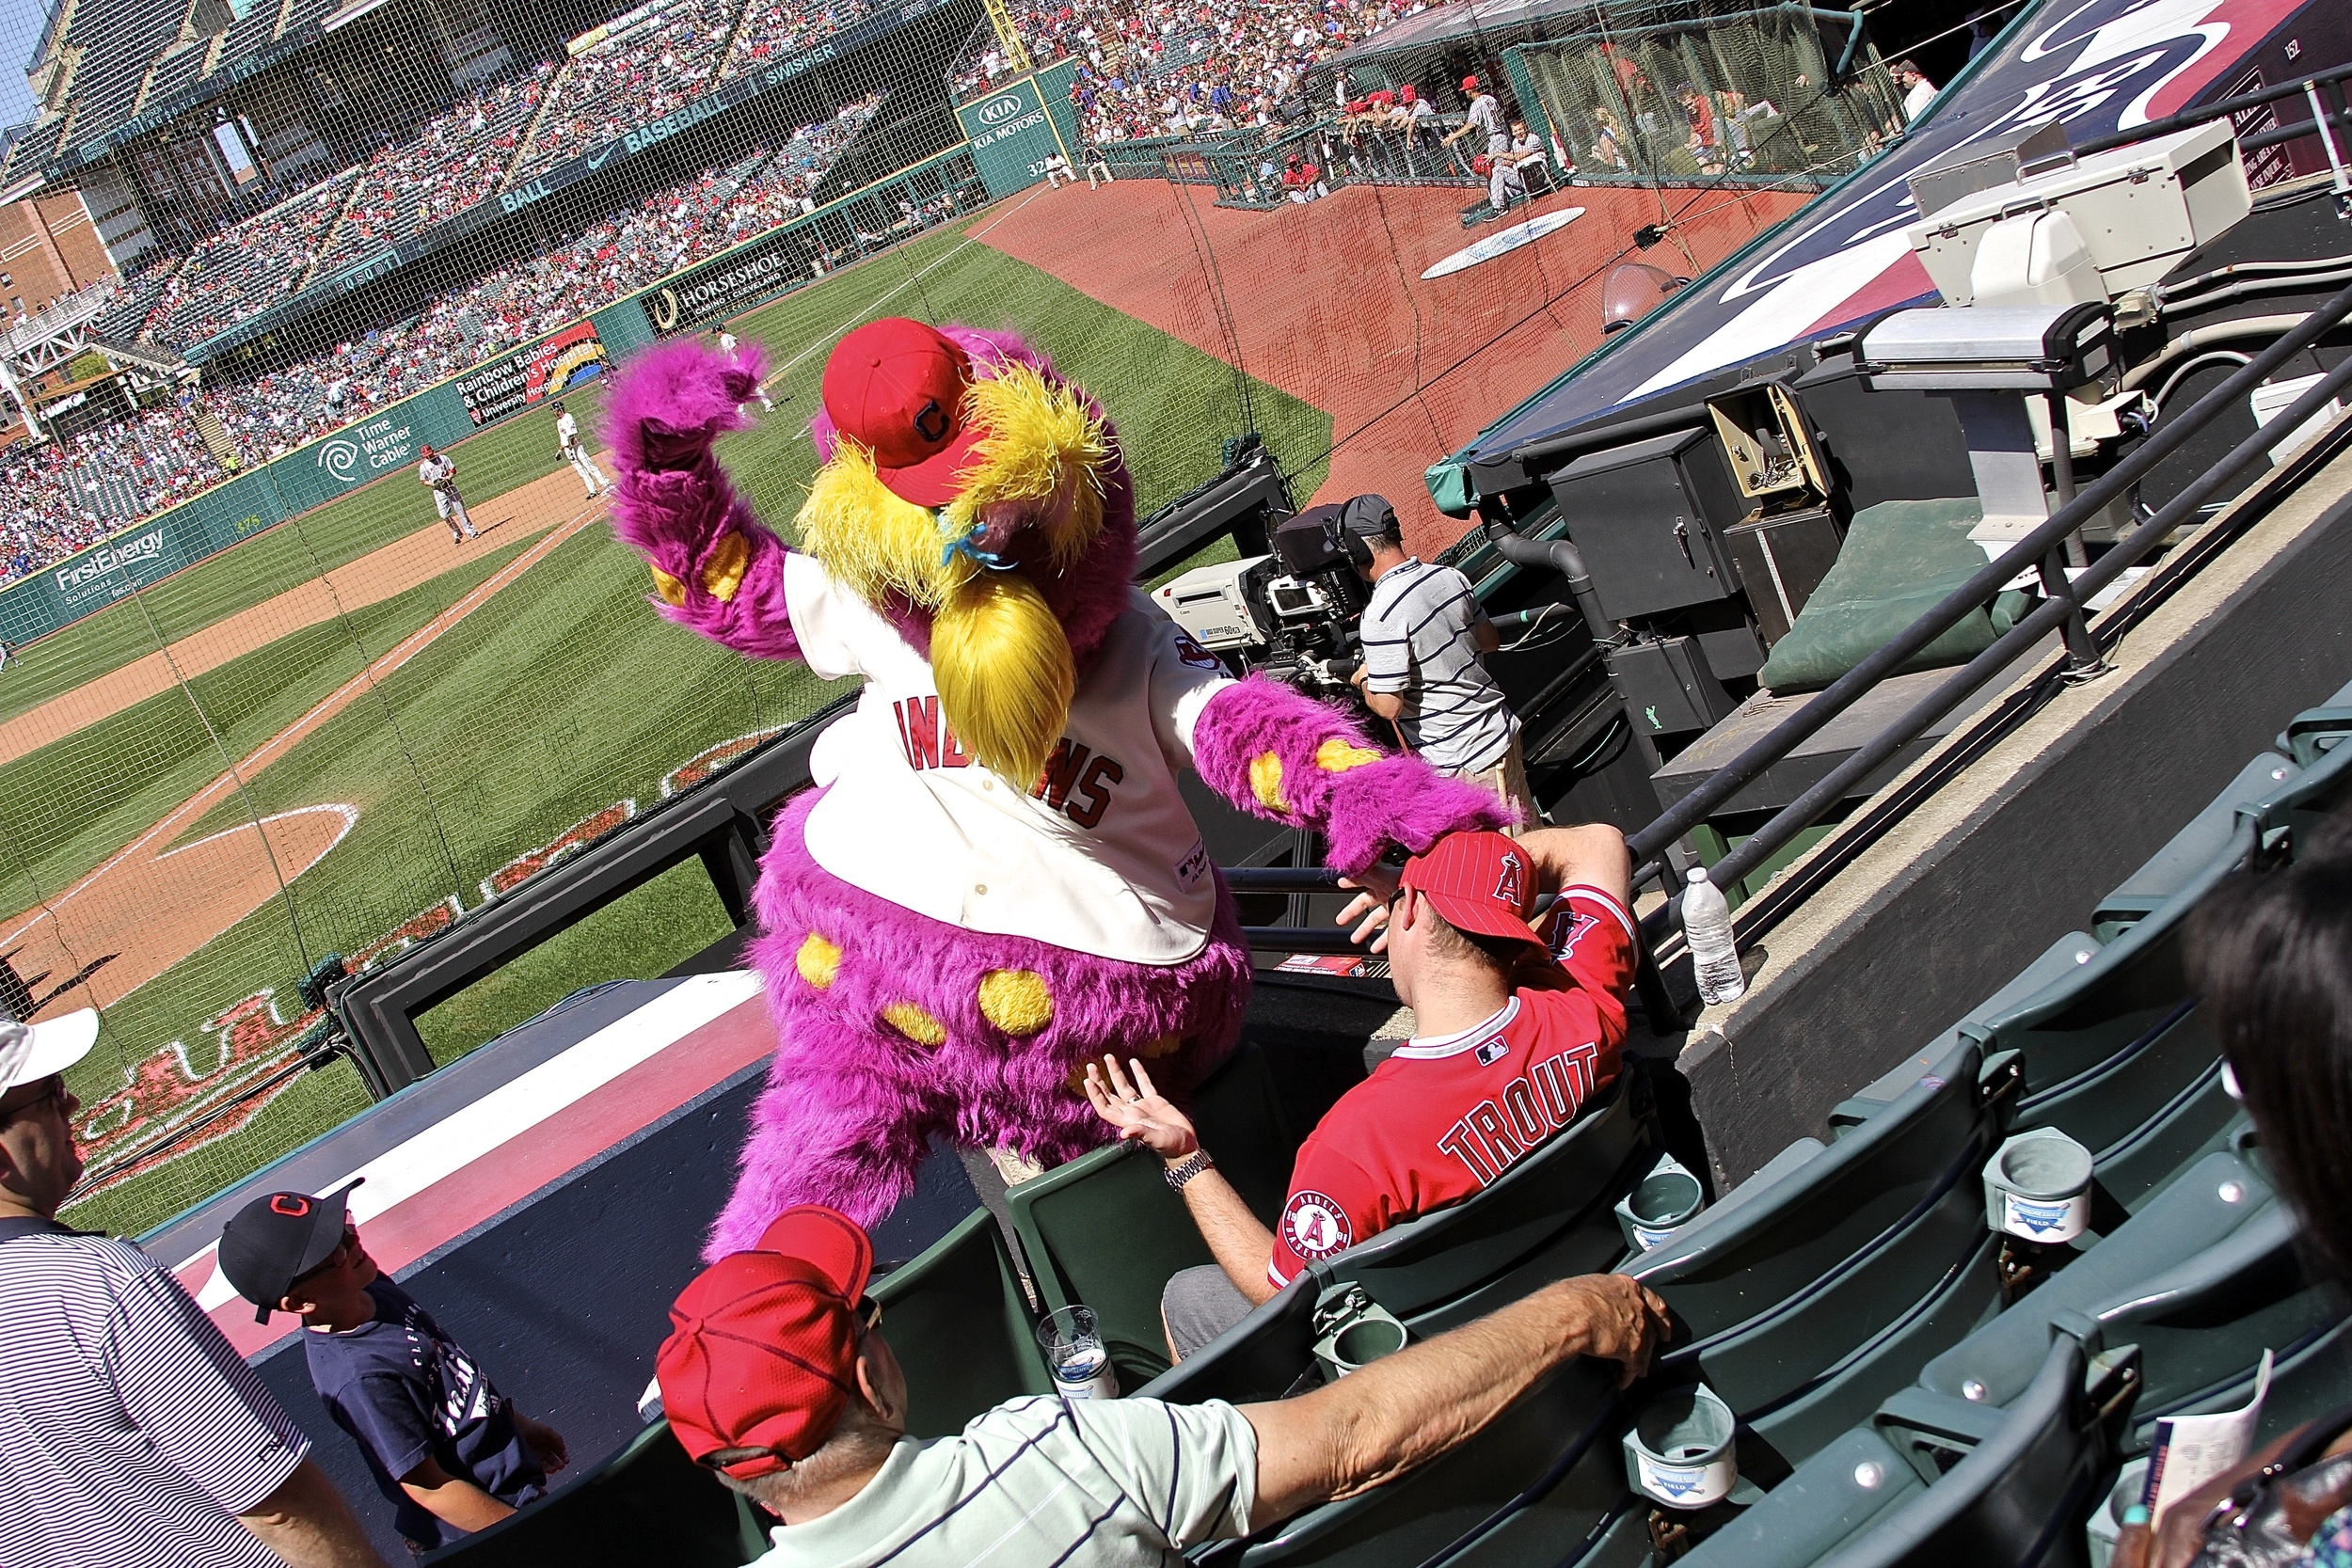 Slider having some fun with A's fan